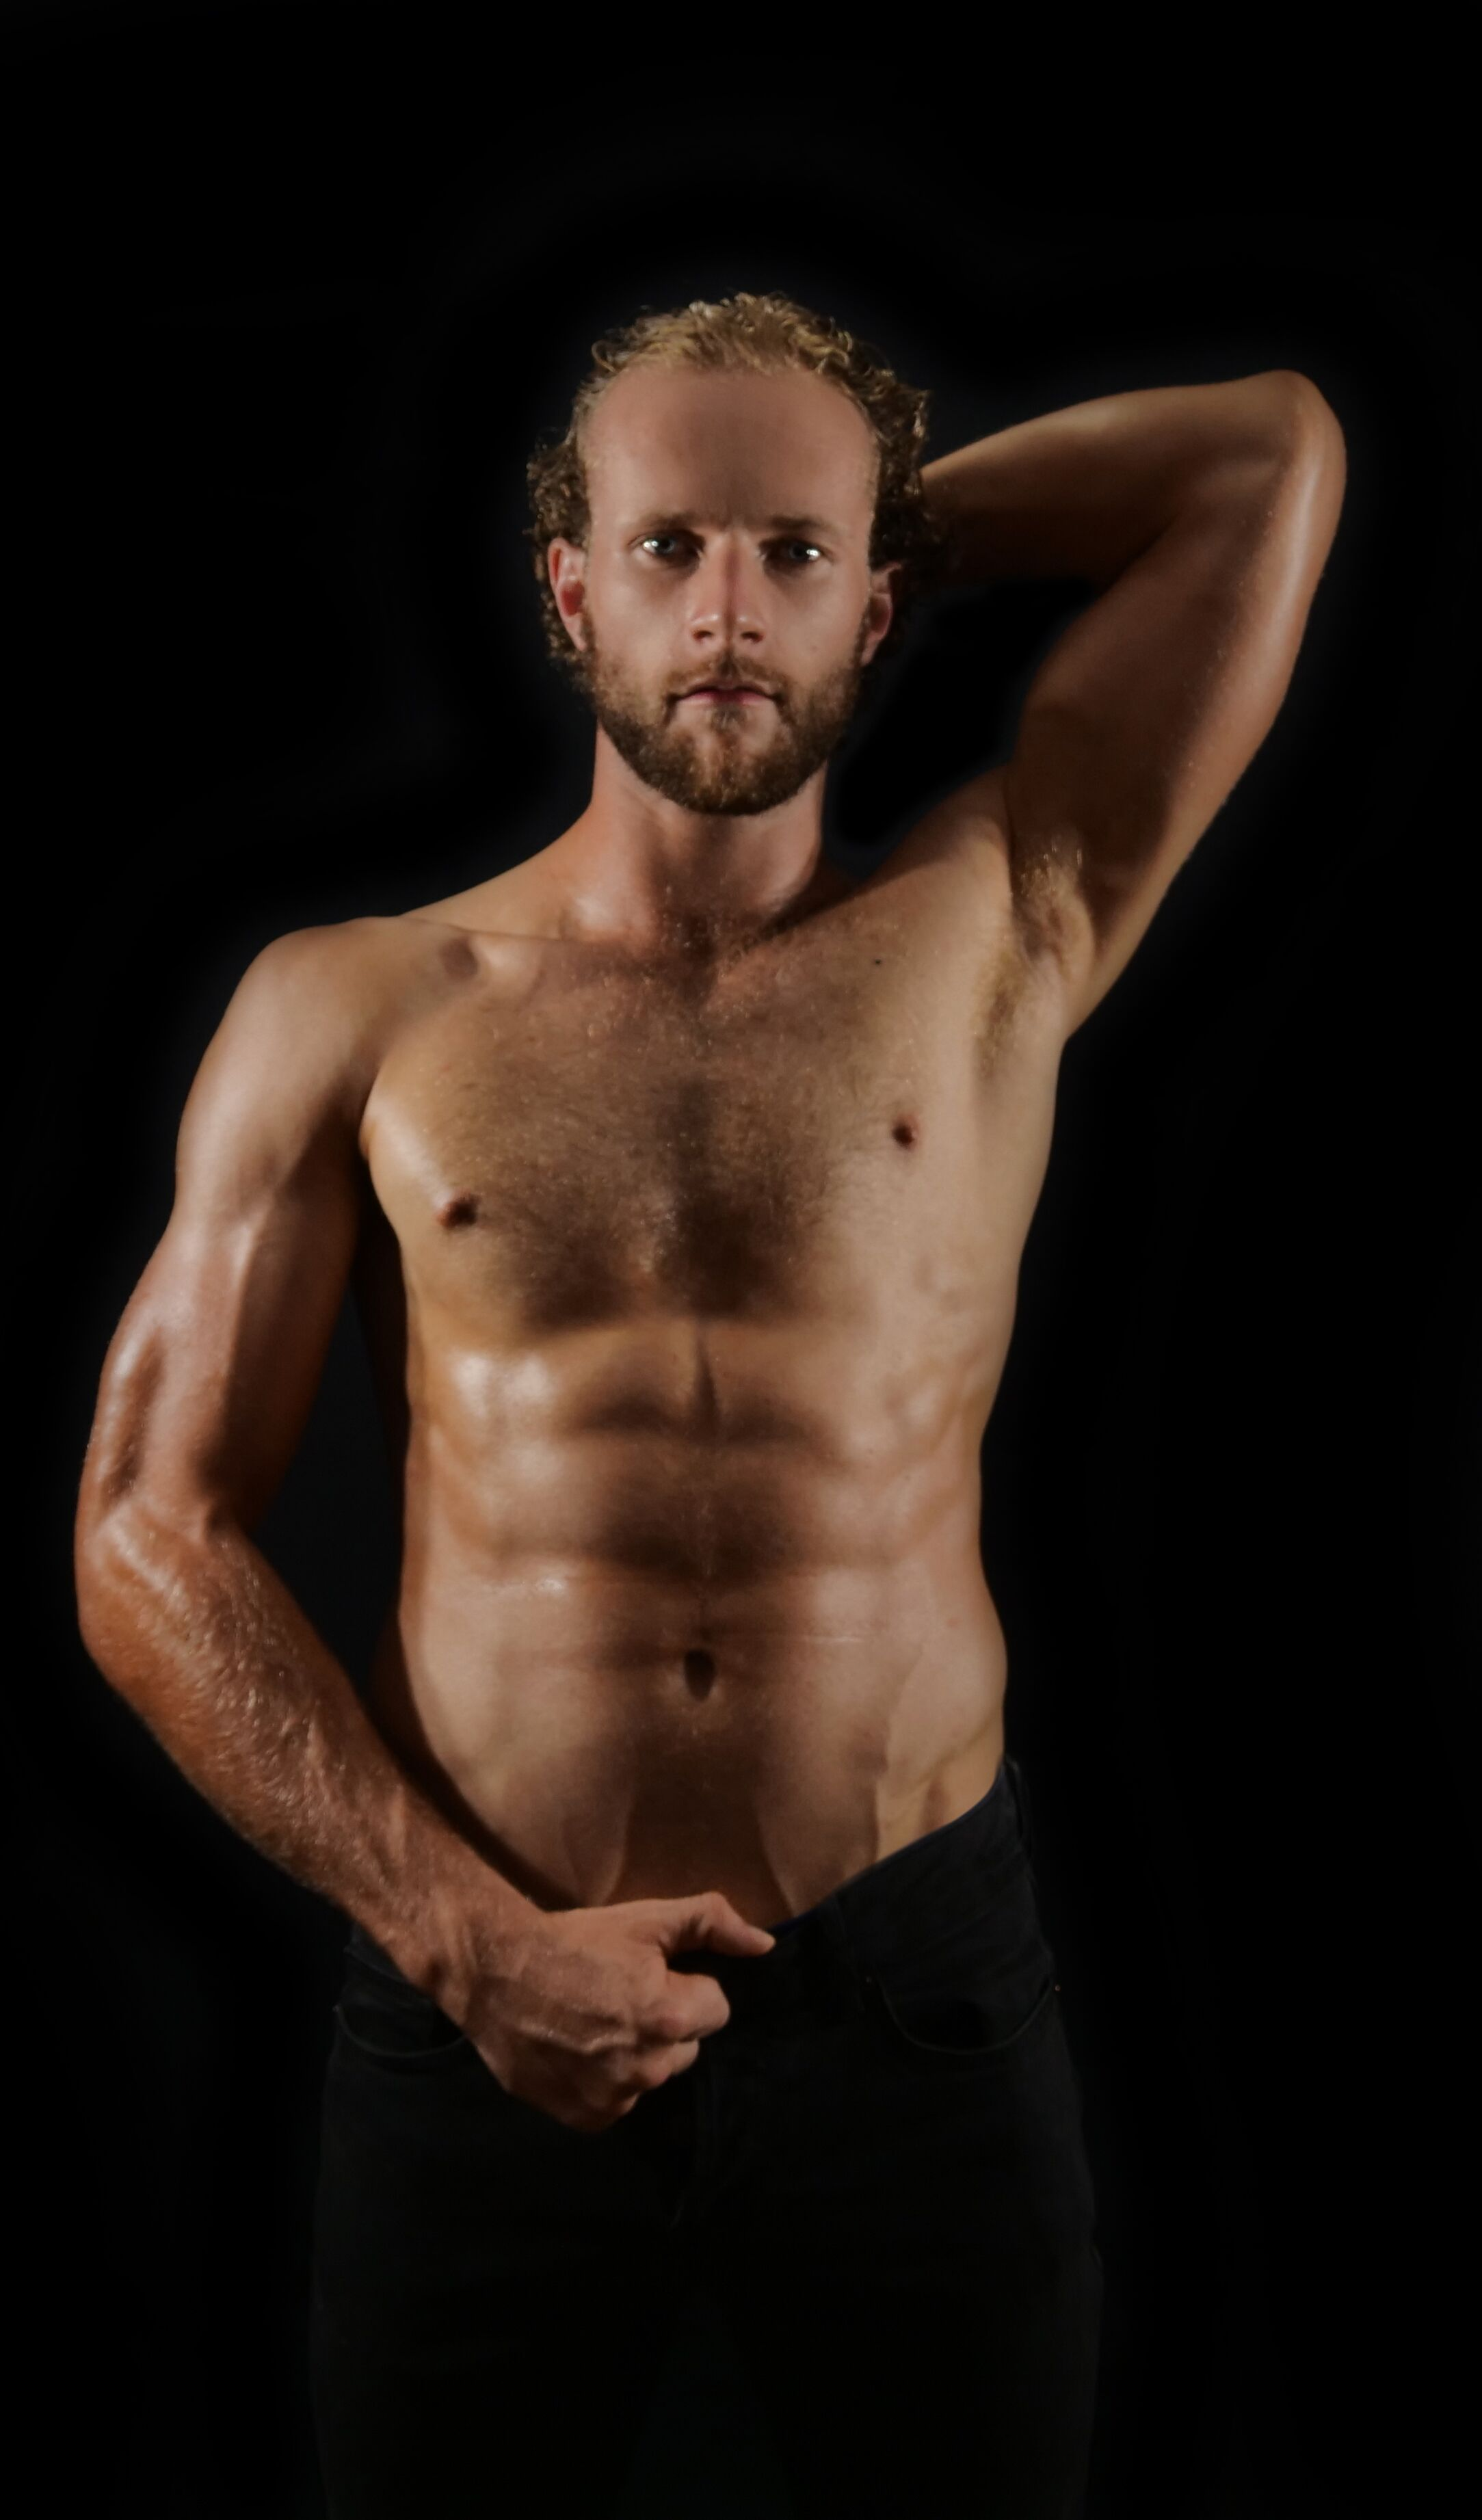 Avondale Topless Waiters Auckland Male Strippers